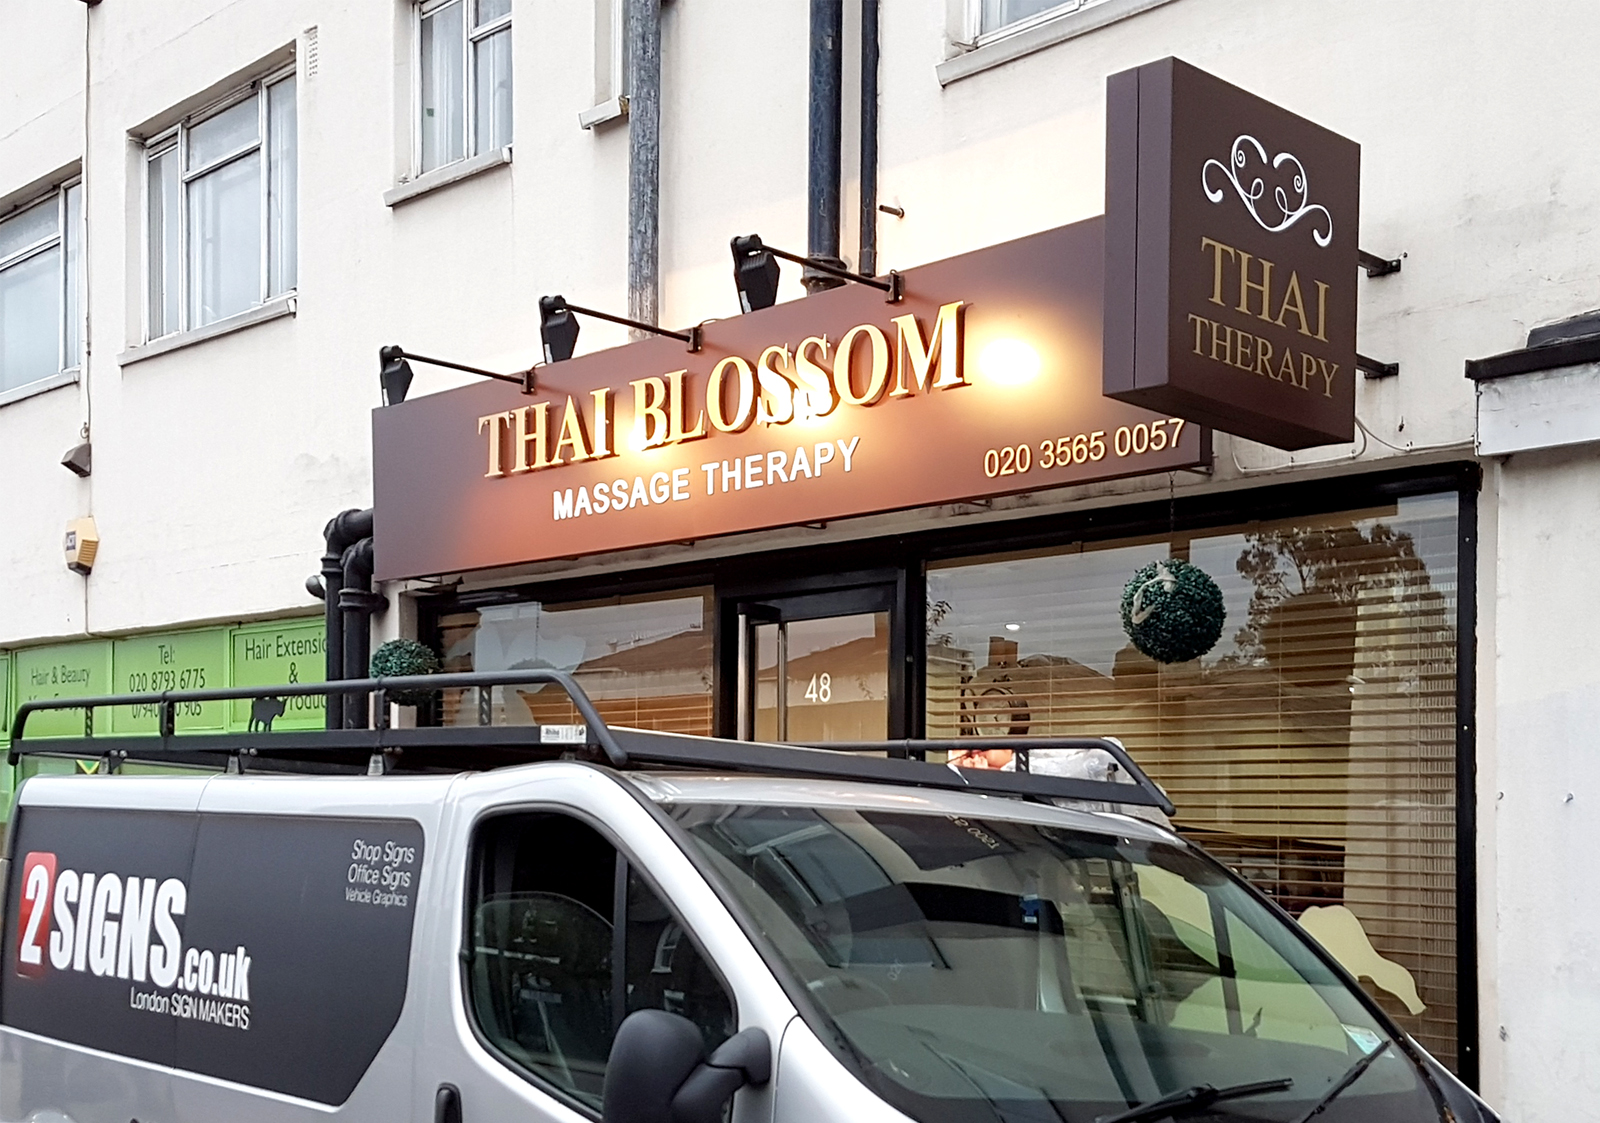 Thai Blossom Beauty Salon Fascia Sign Board With Lighting